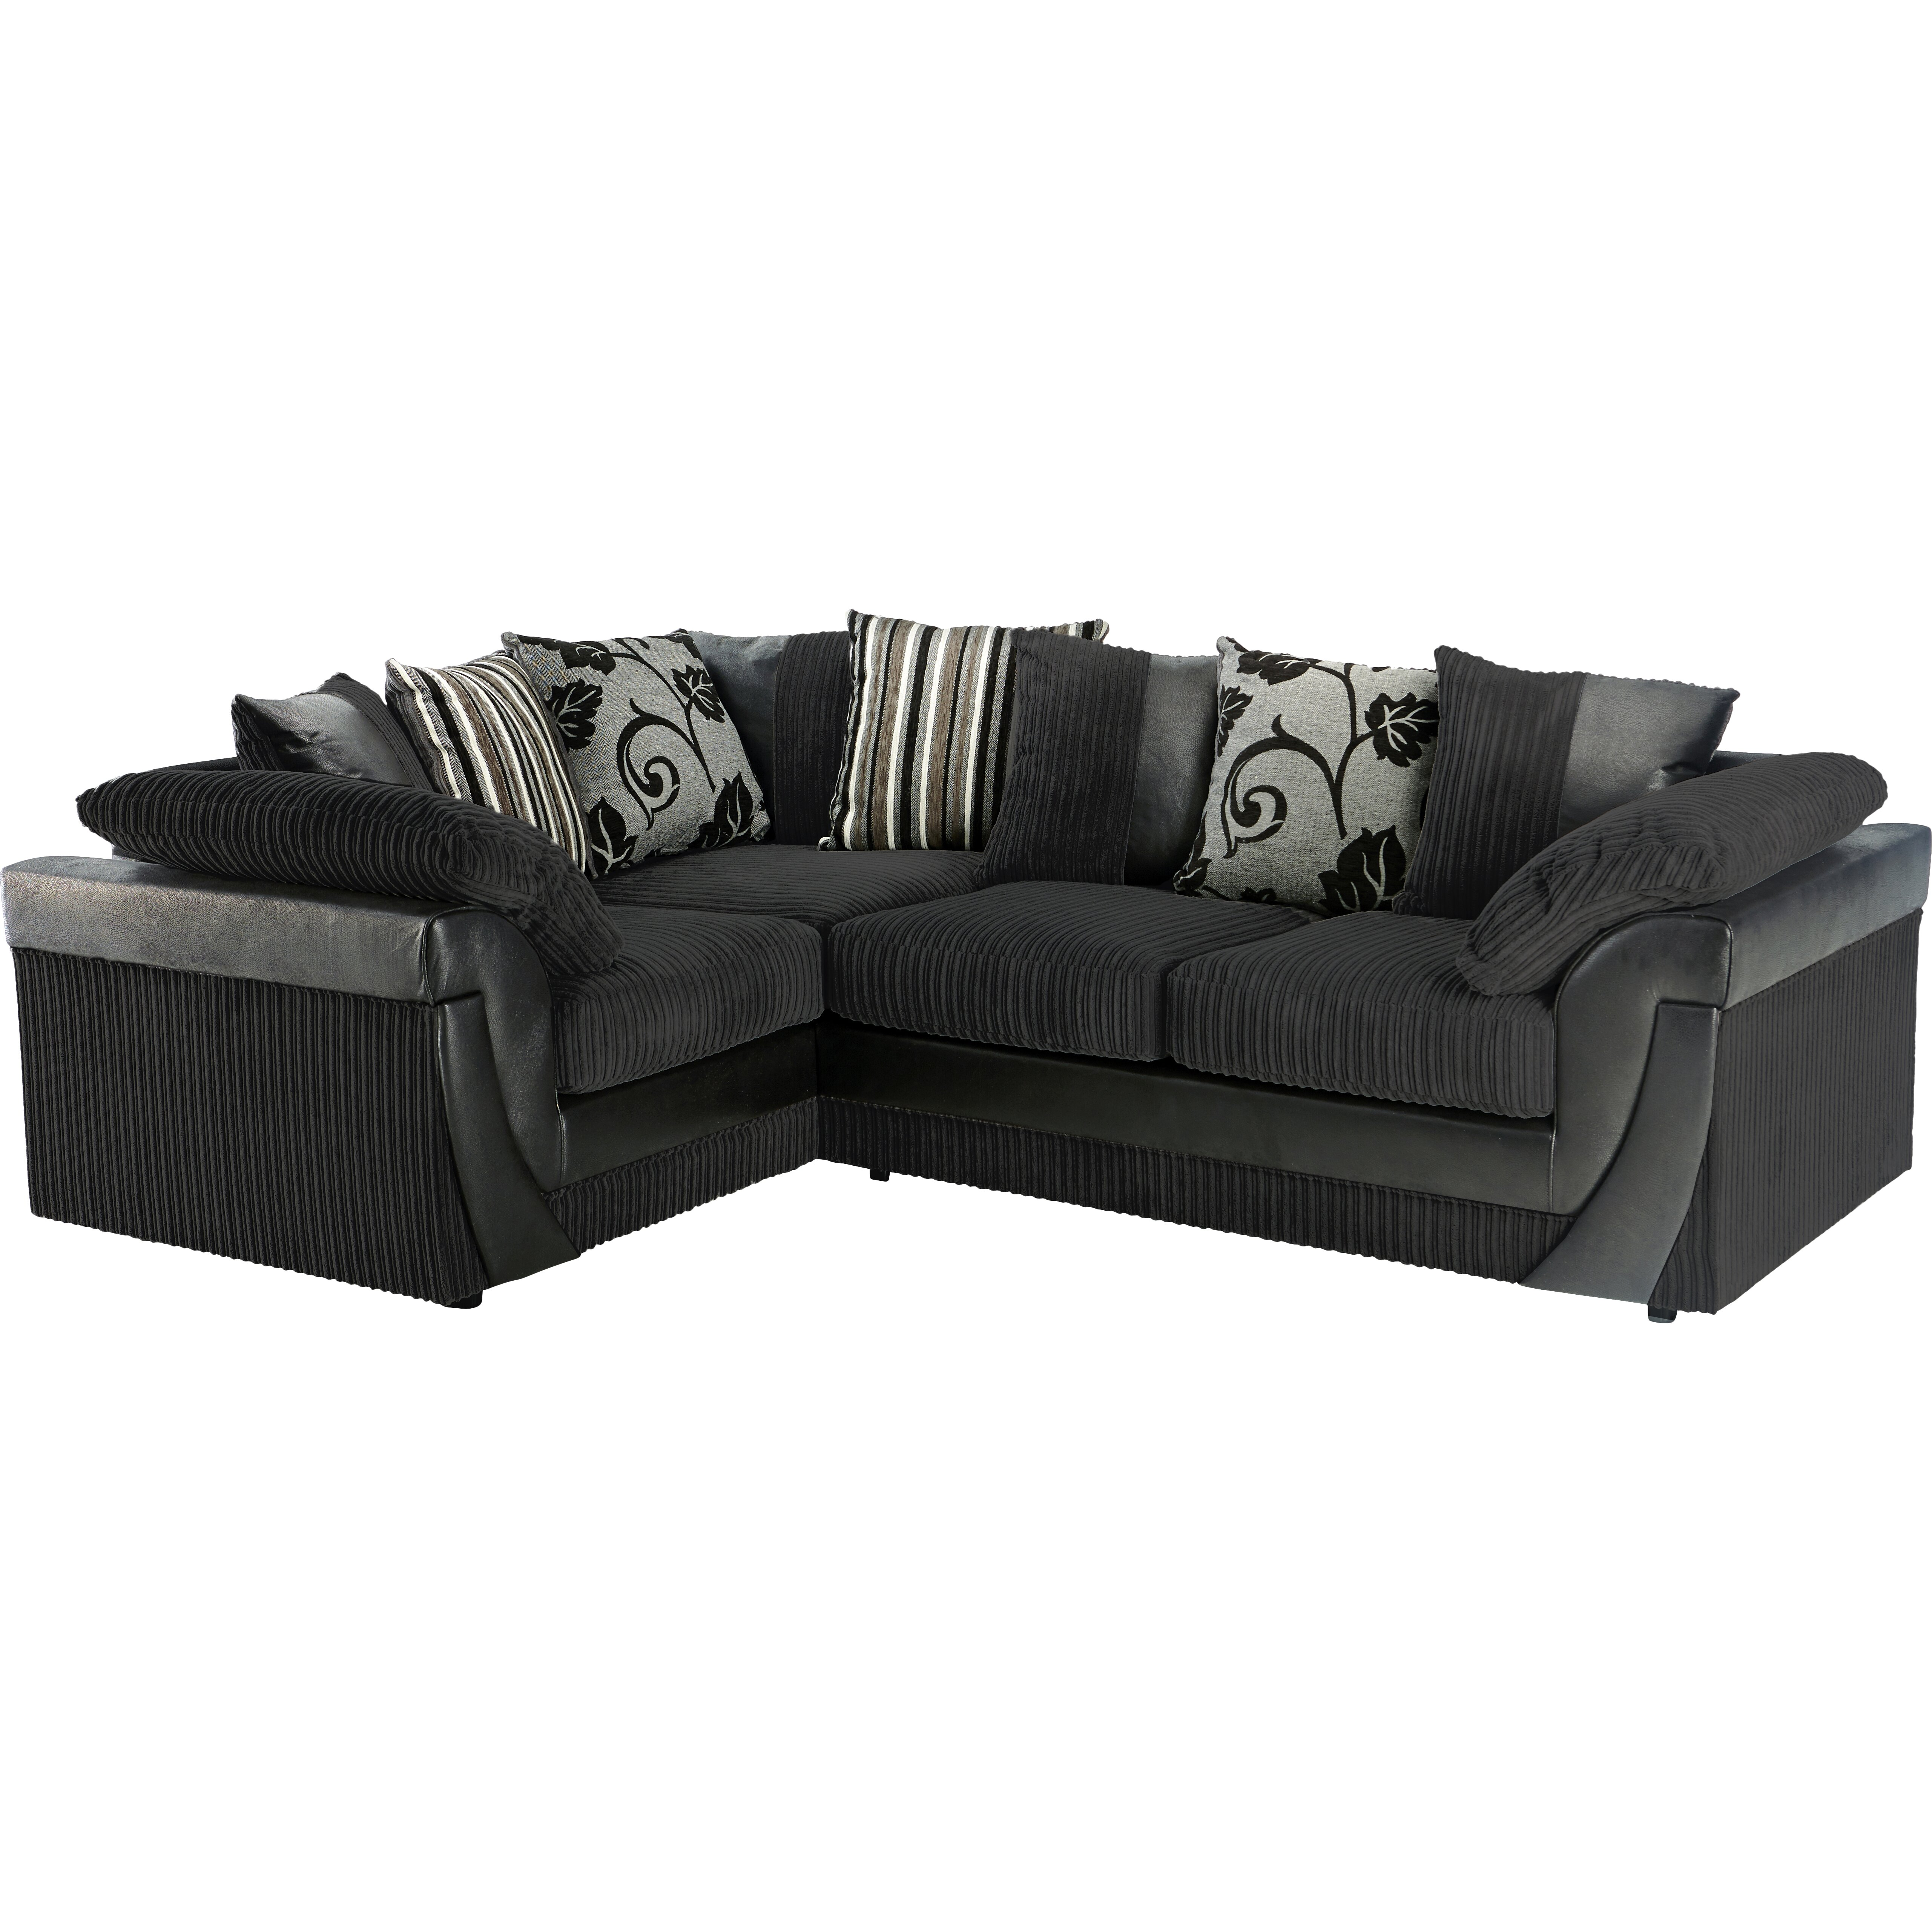 Curved Leather Sectional Sofa Uk